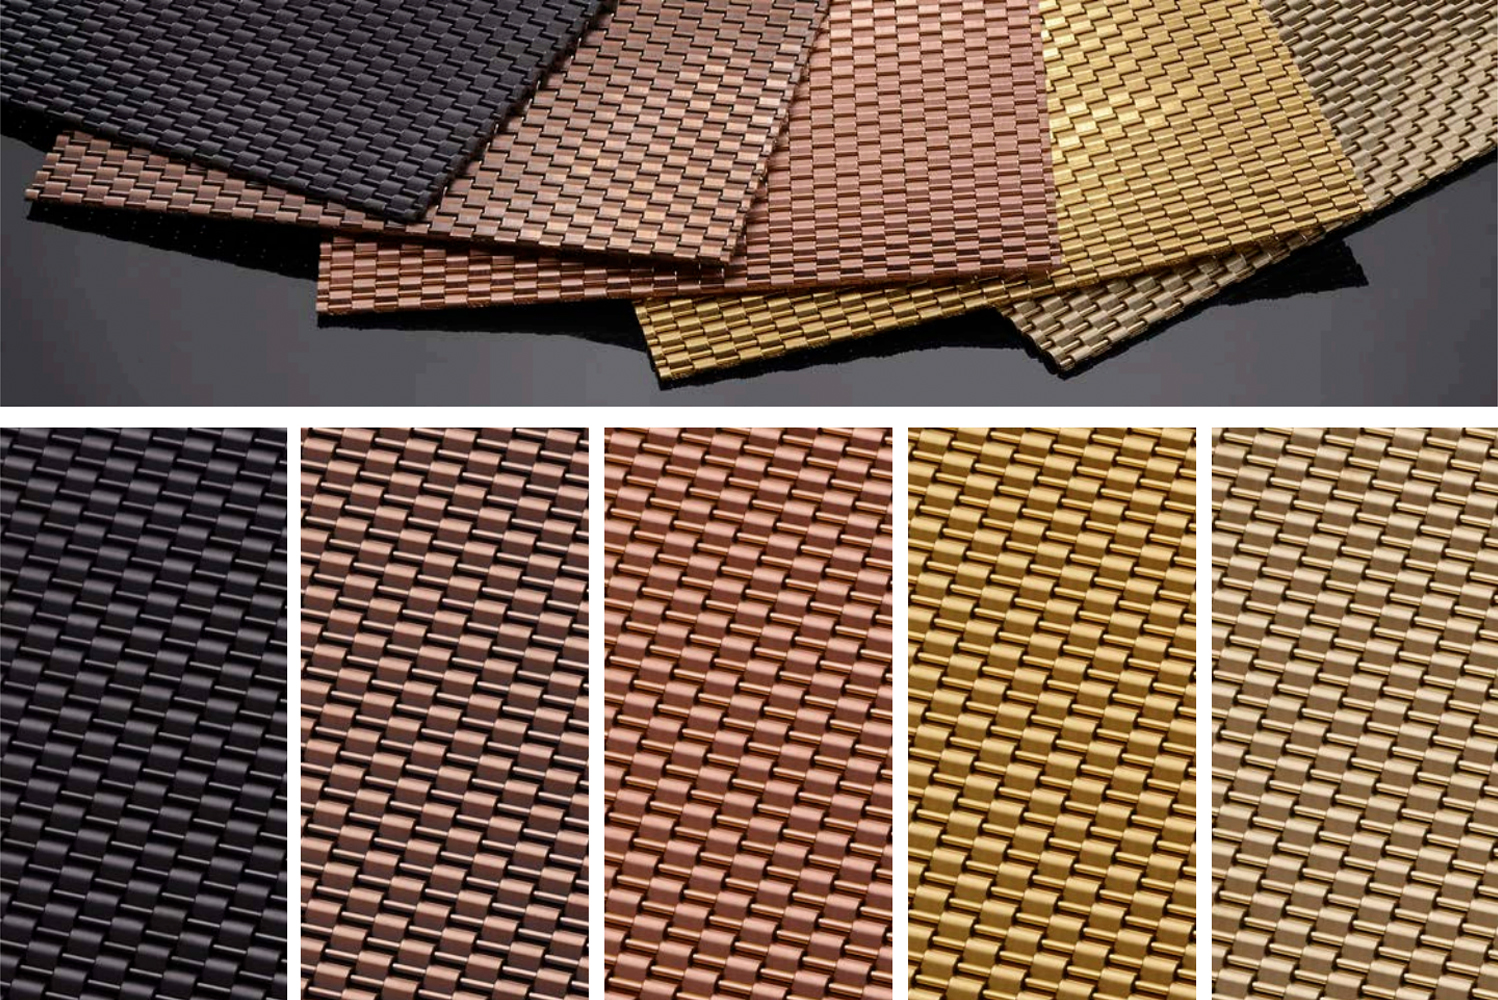 Banker Wire introduced new finishes for its Physical Vapor Deposition (PVD) process to the company's wire mesh offerings.